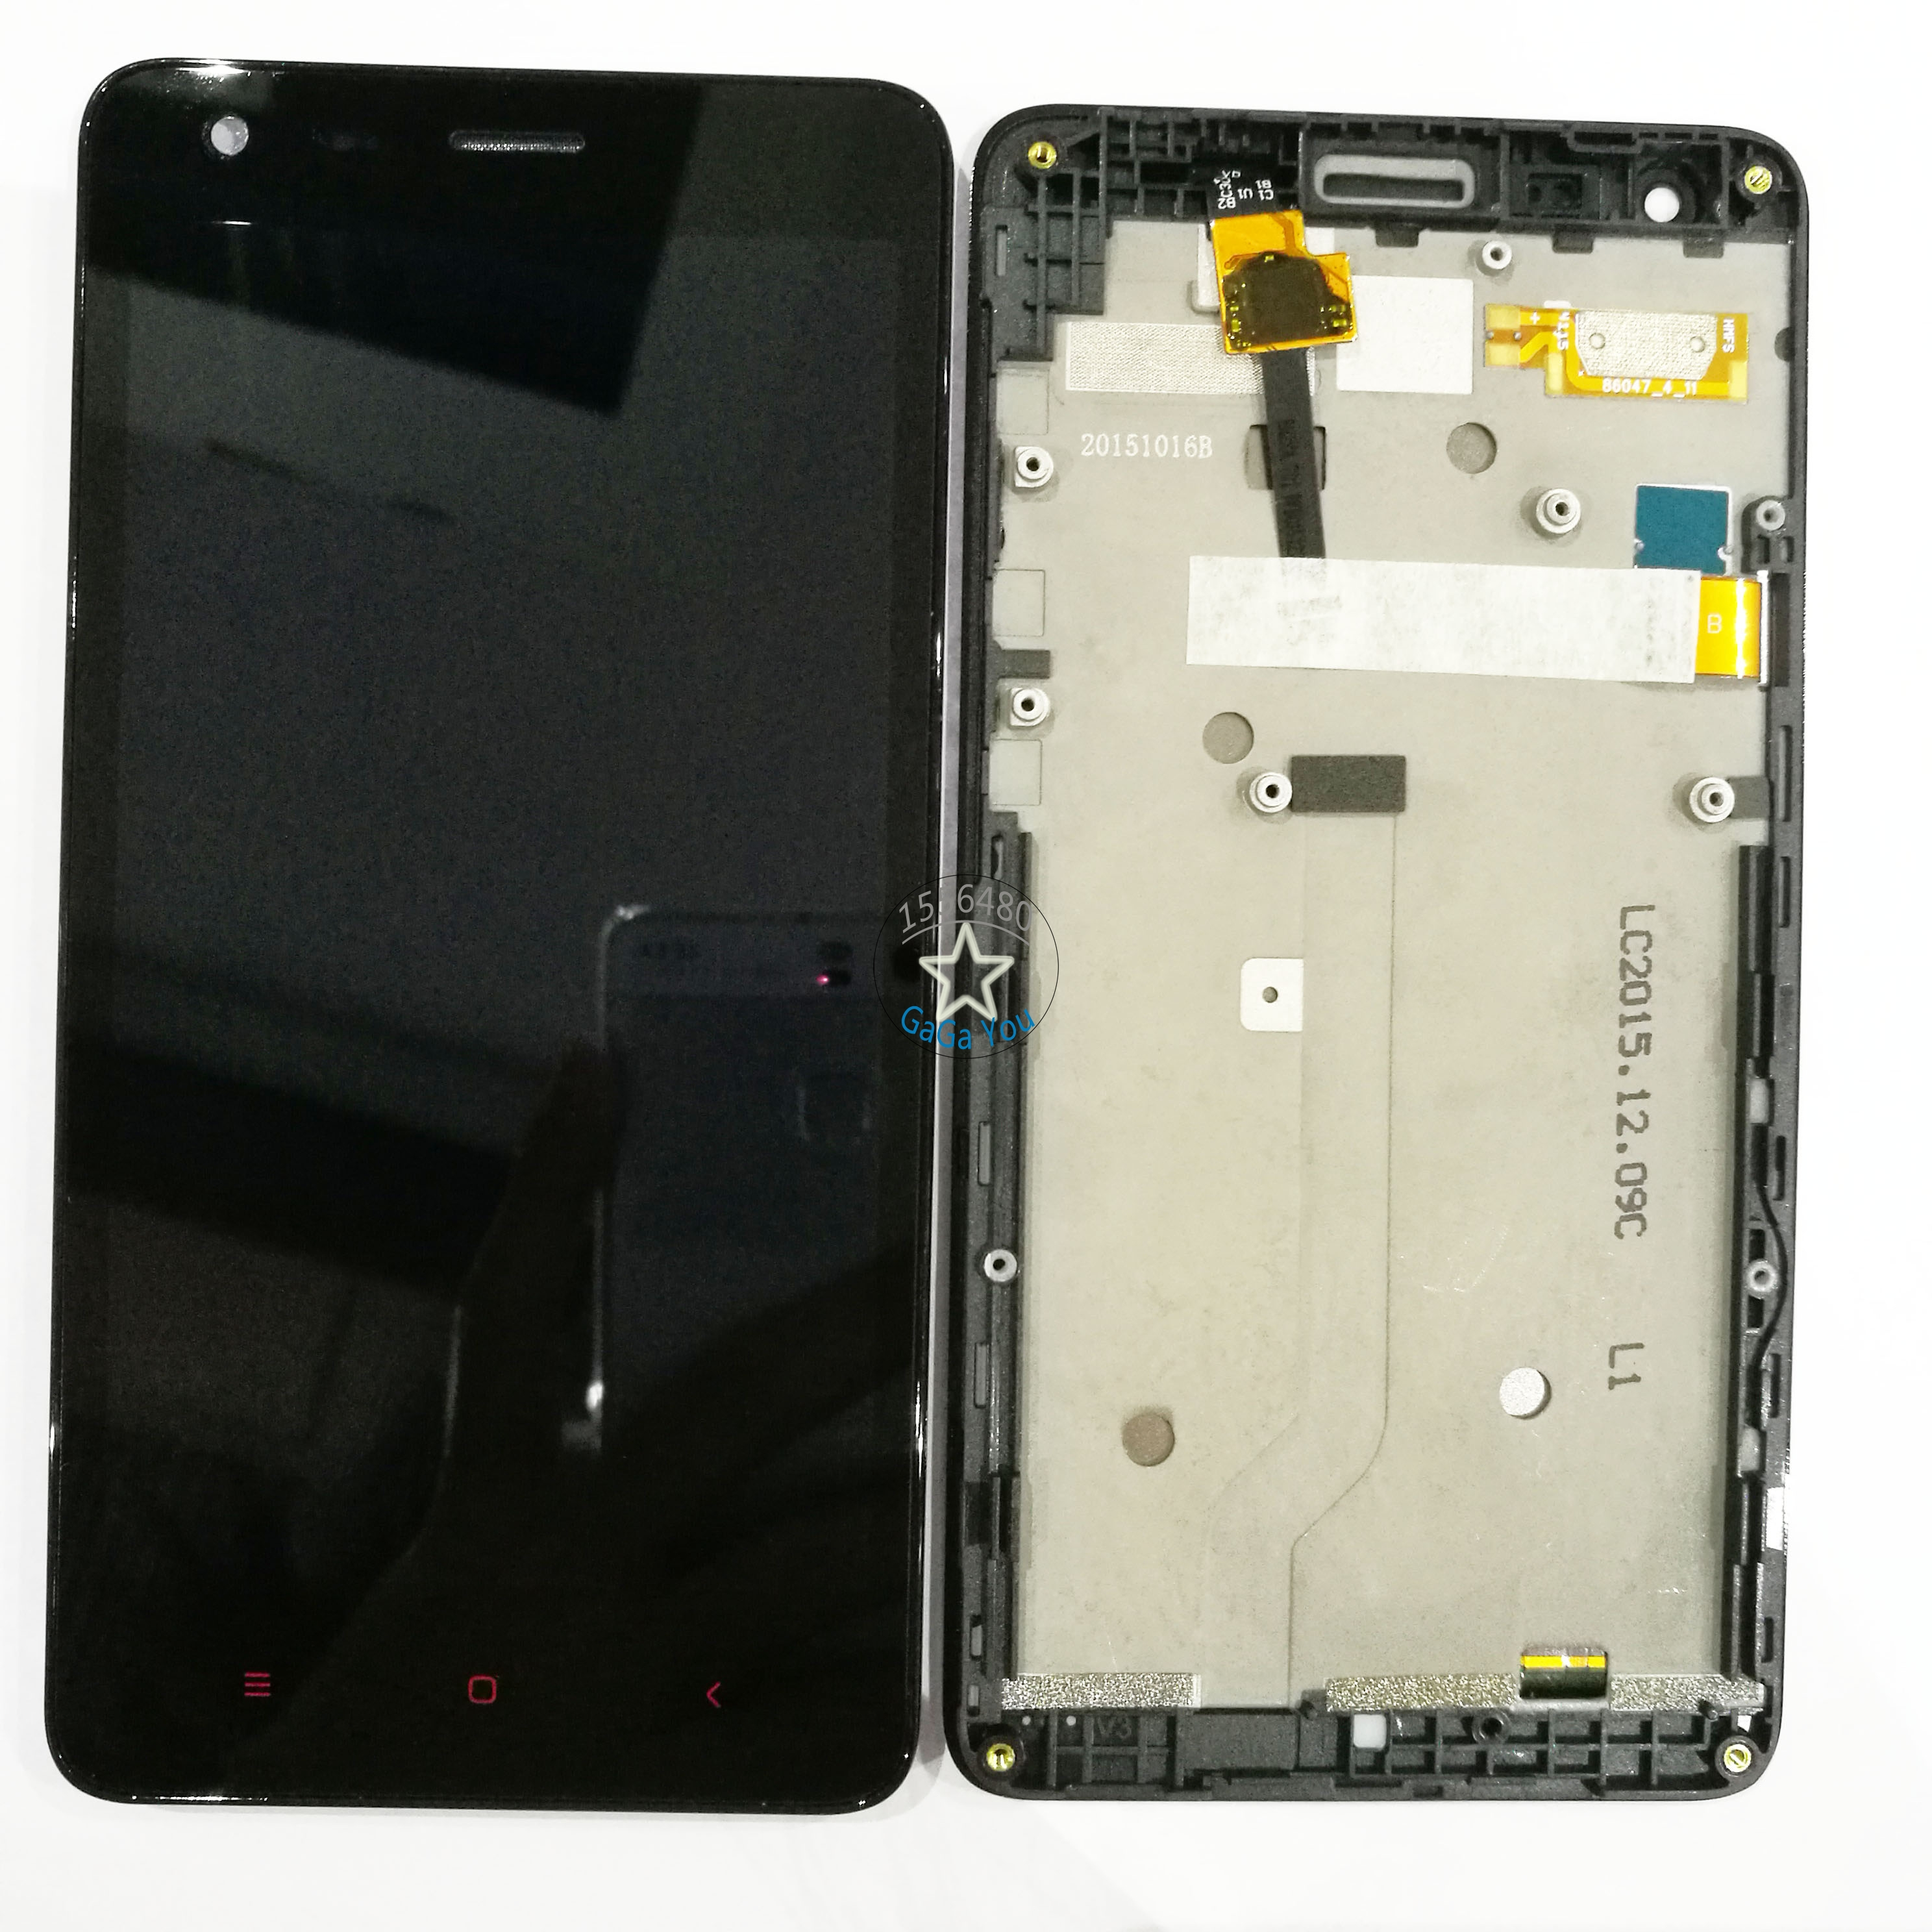 Original LCD Display +Touch Screen Panel Digitizer +Bezel Frame Assembly For Xiaomi Redmi 2 Replacement Parts